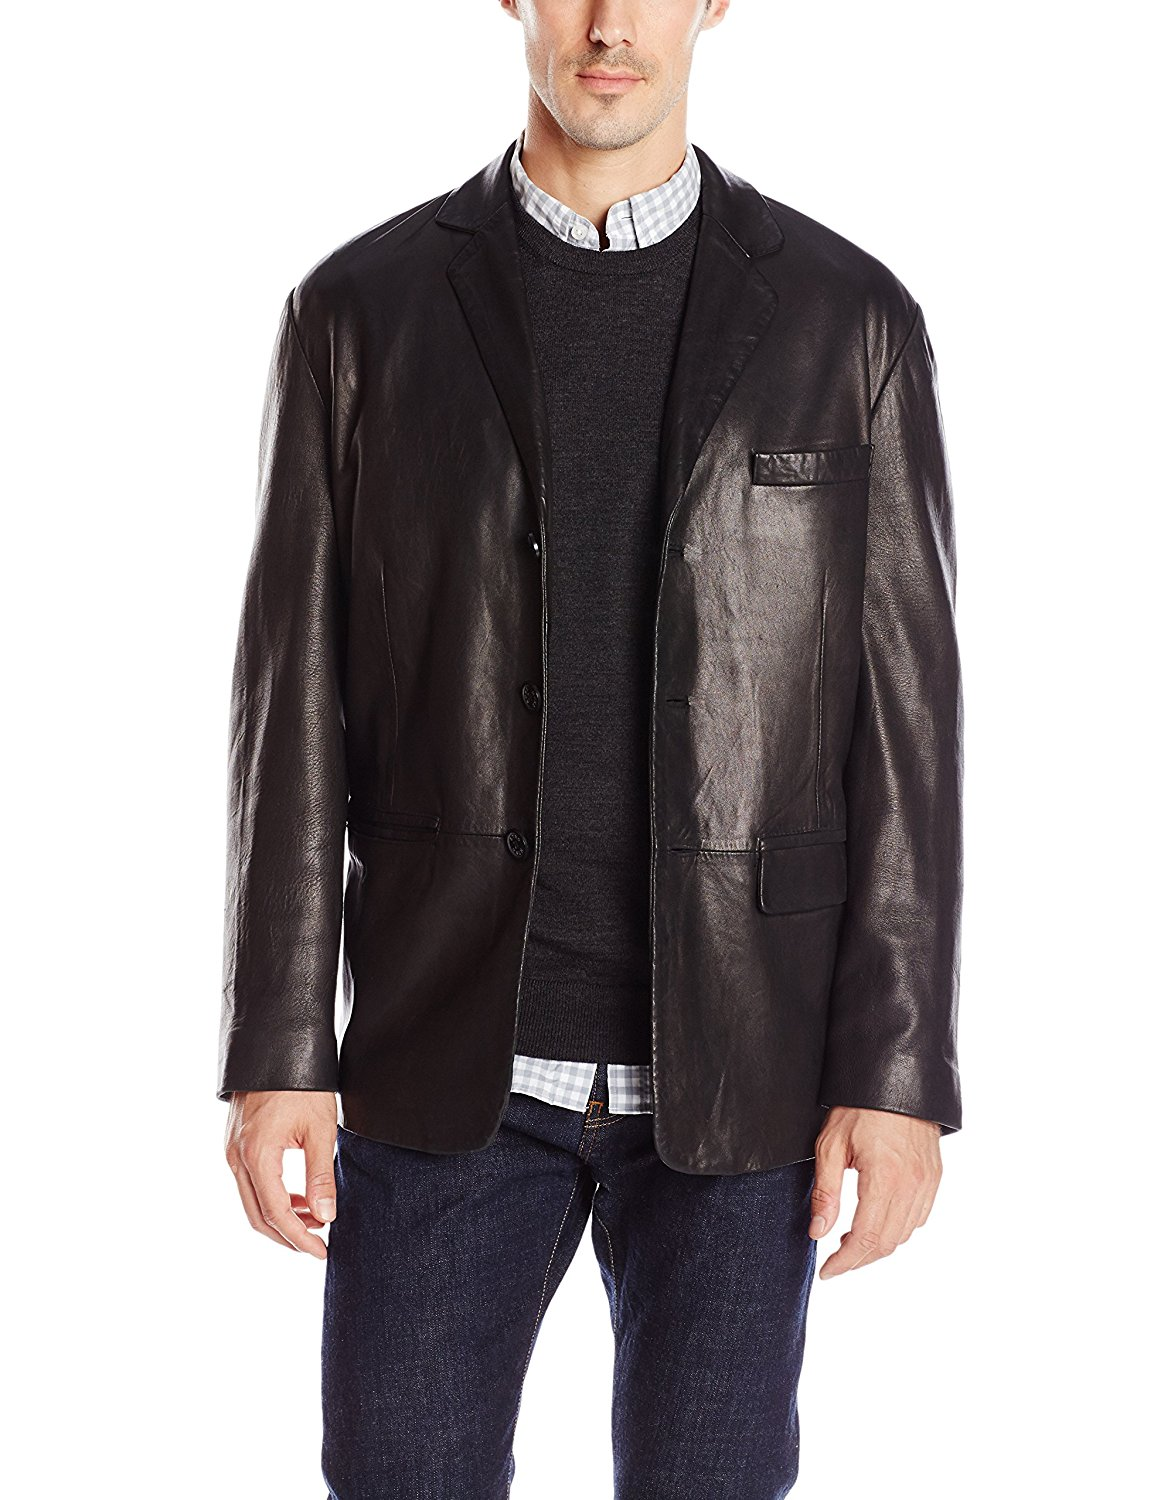 USA Leather Classic Mens Black Leather Coat - Small